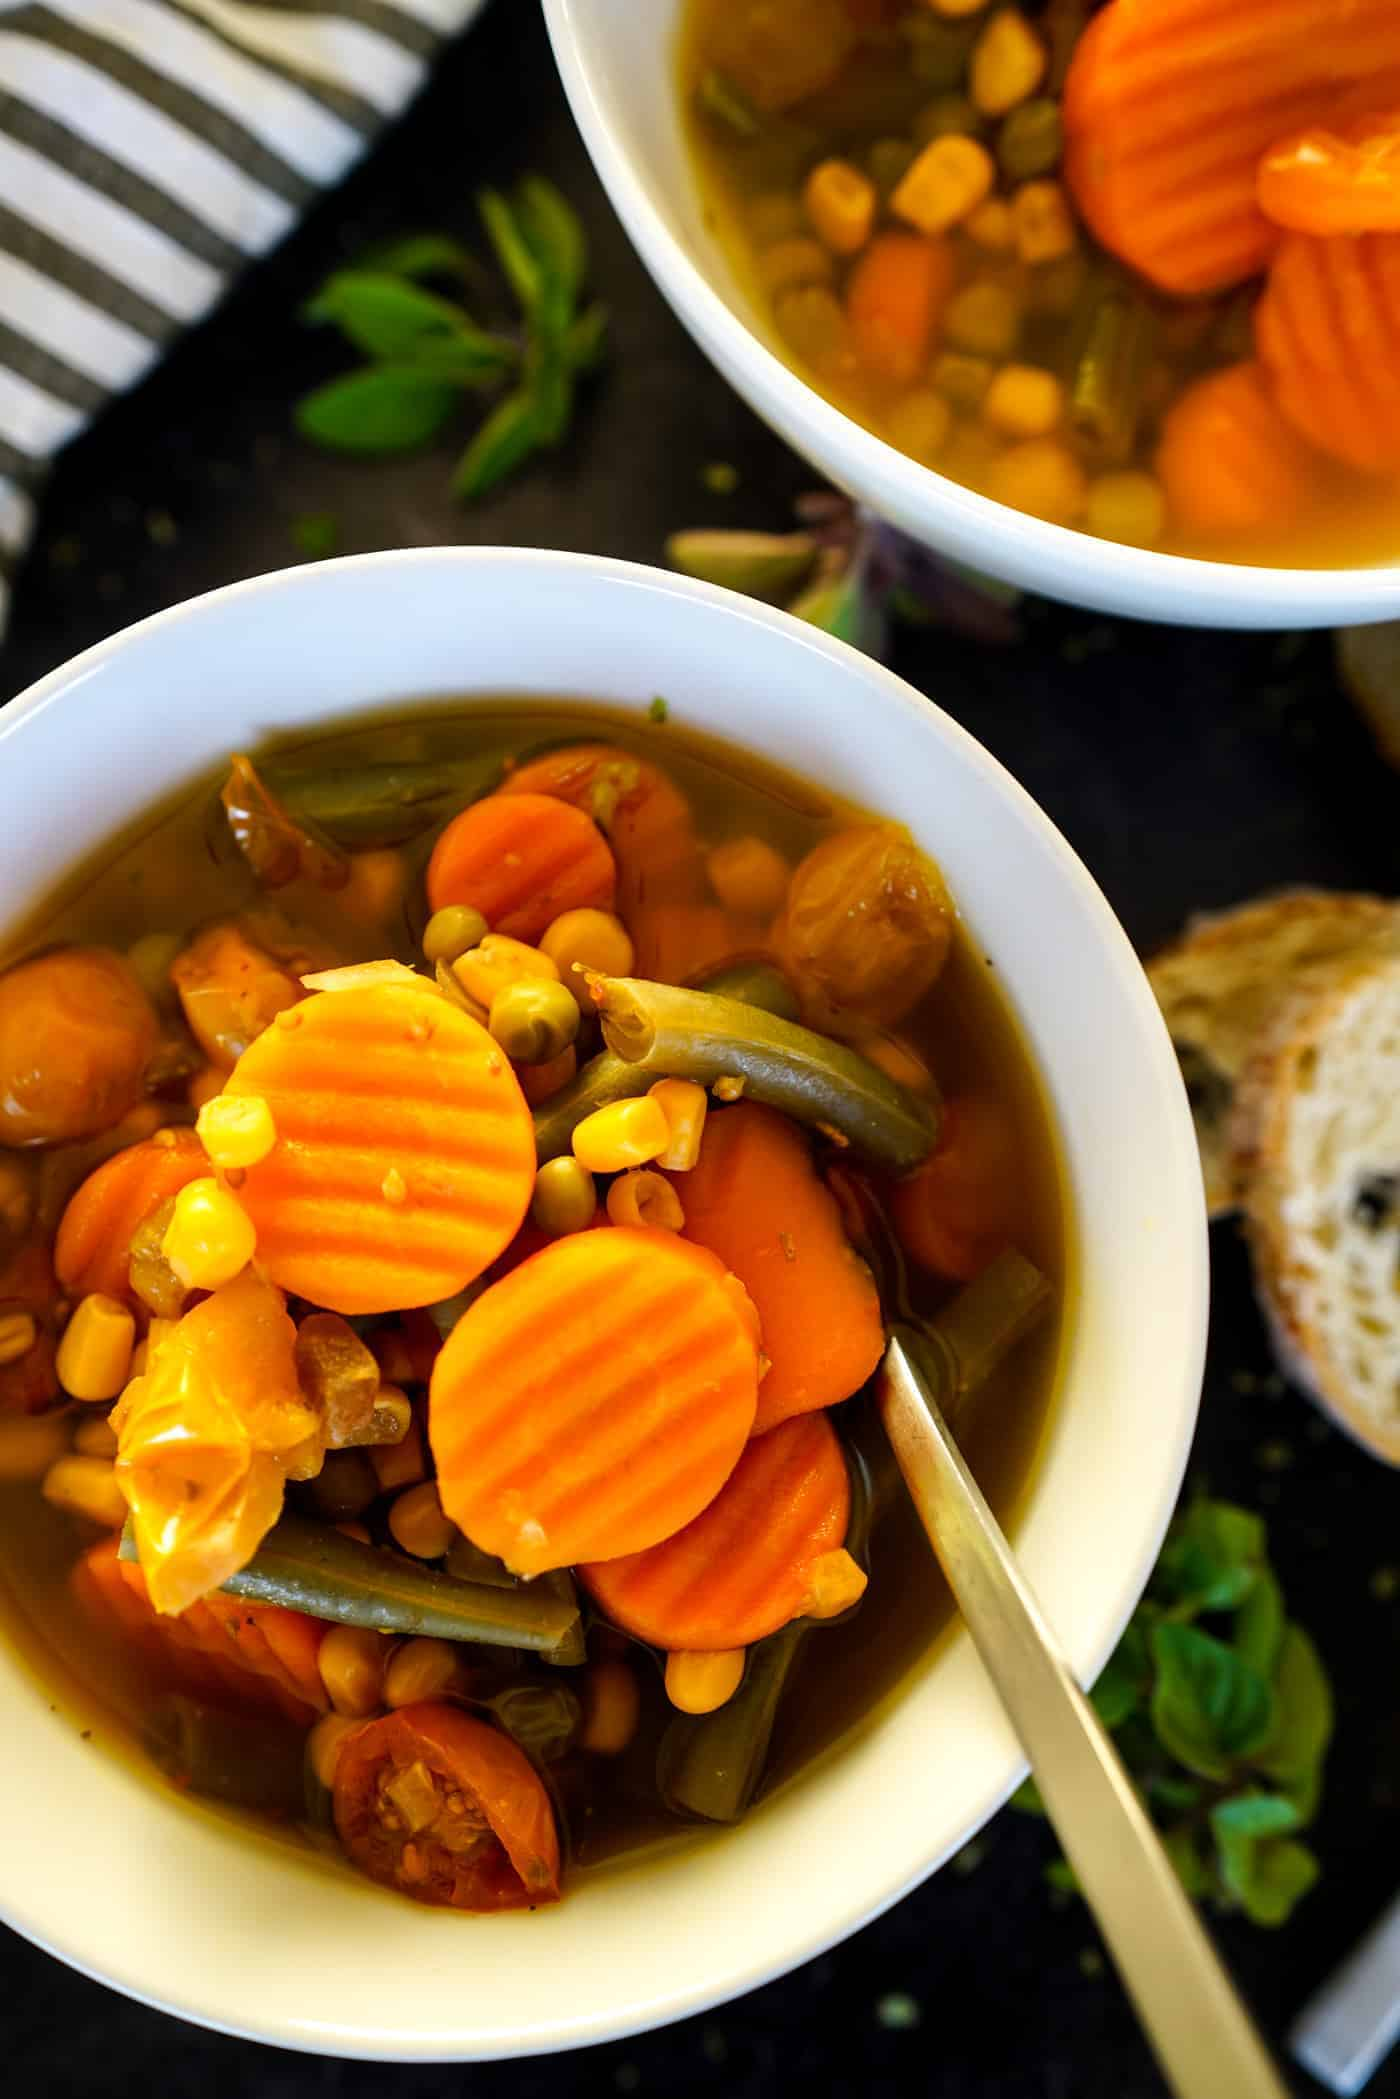 A Lily Love Affair shares a recipe for Instant Pot Vegetable Soup